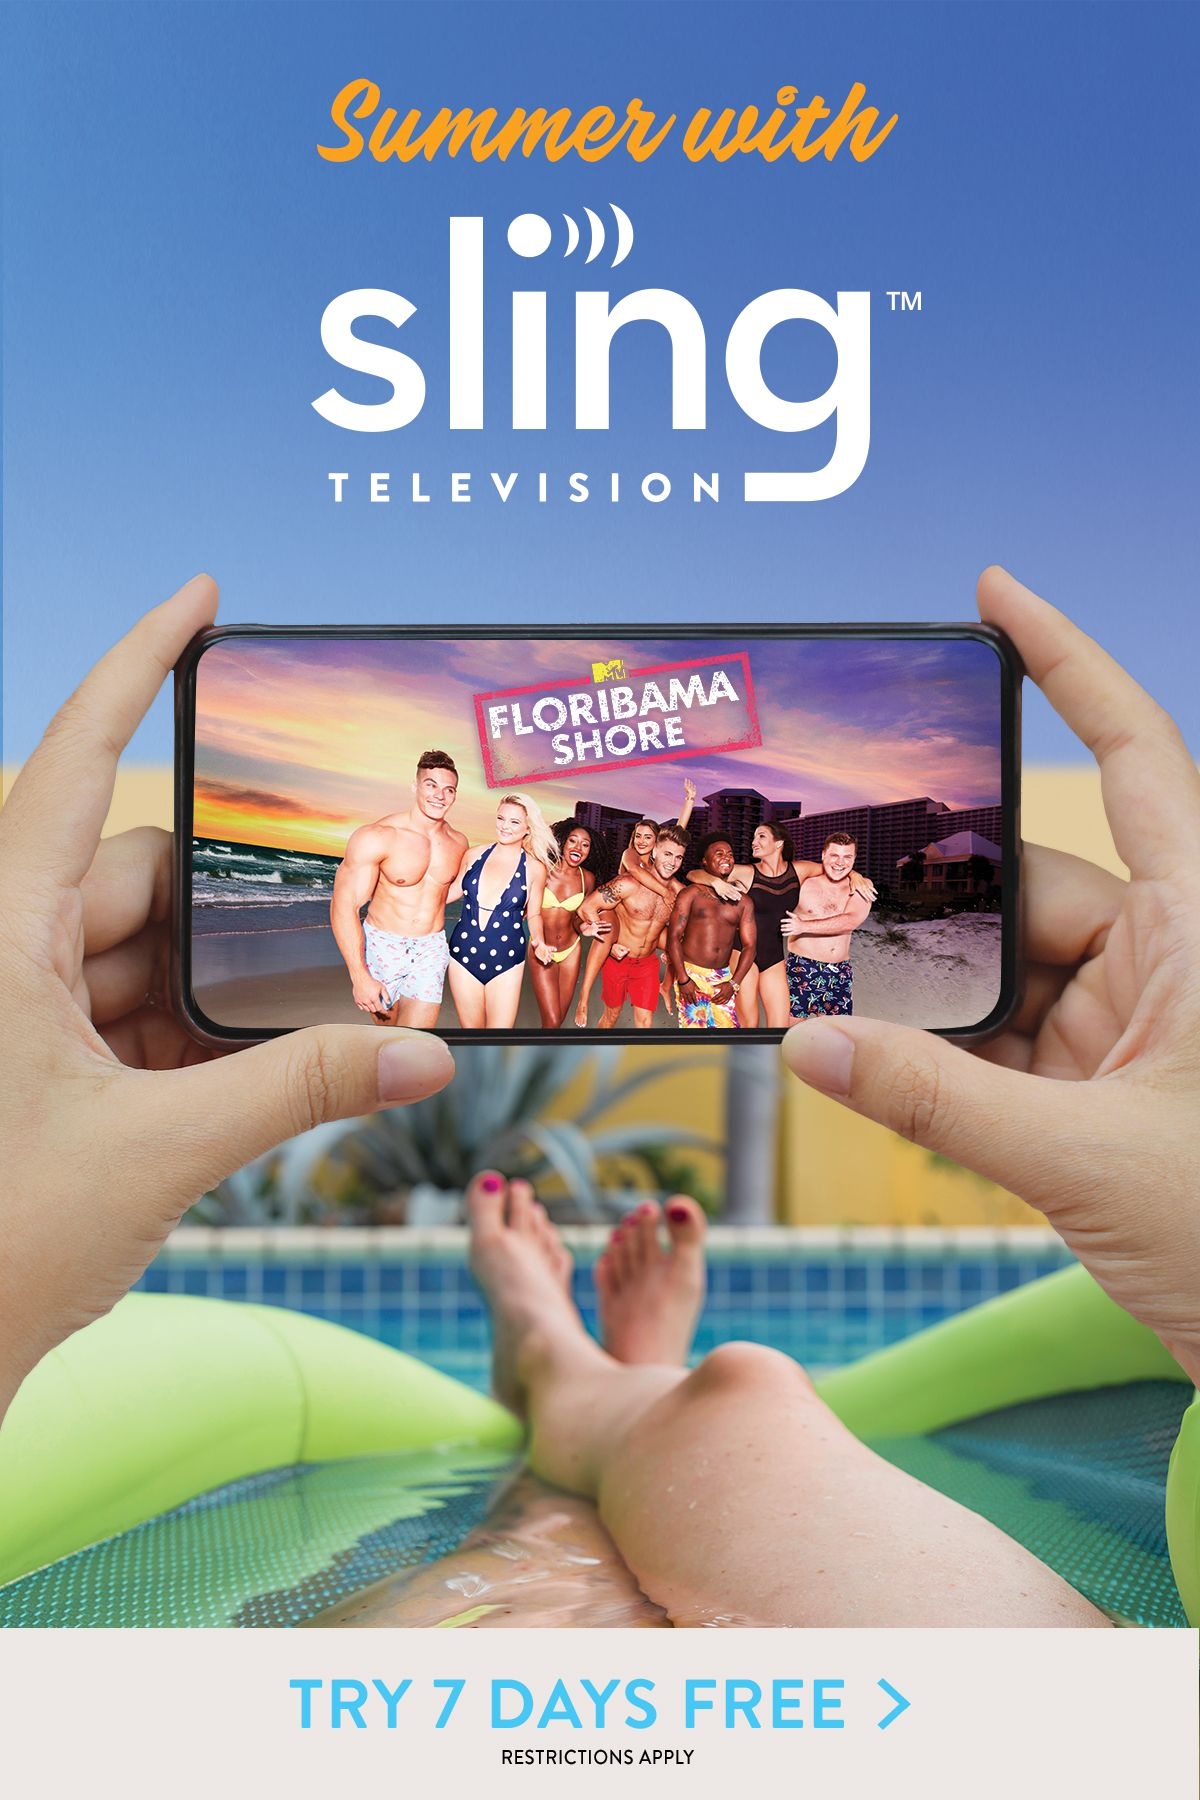 Watch FREE & get the live TV you love with Sling TV